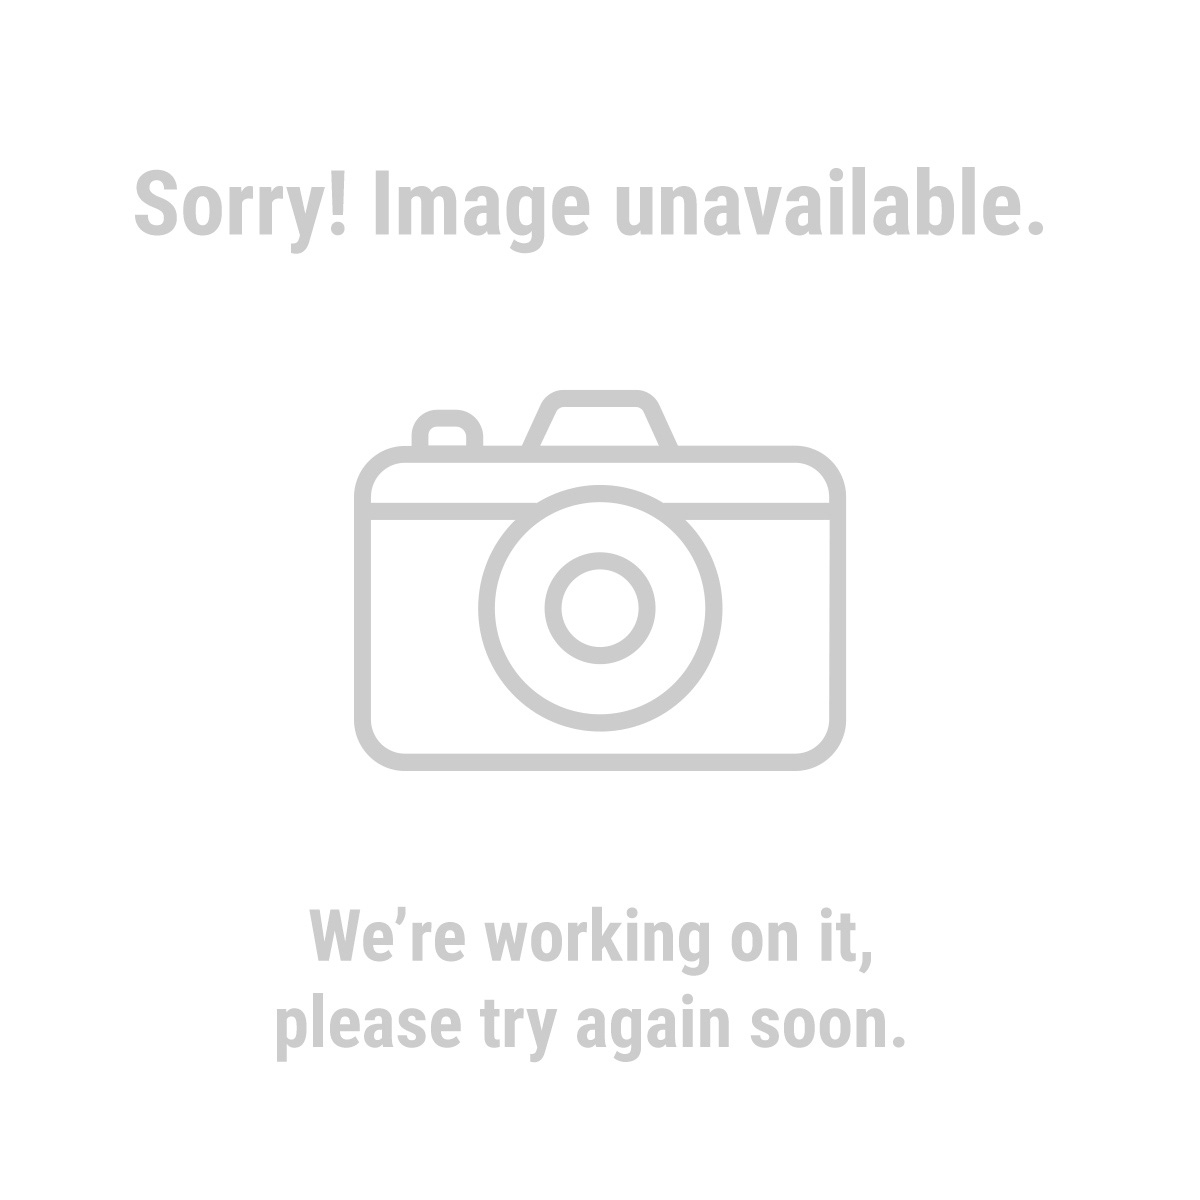 Western Safety 94874 2 Piece Yellow Rain Suit, Large